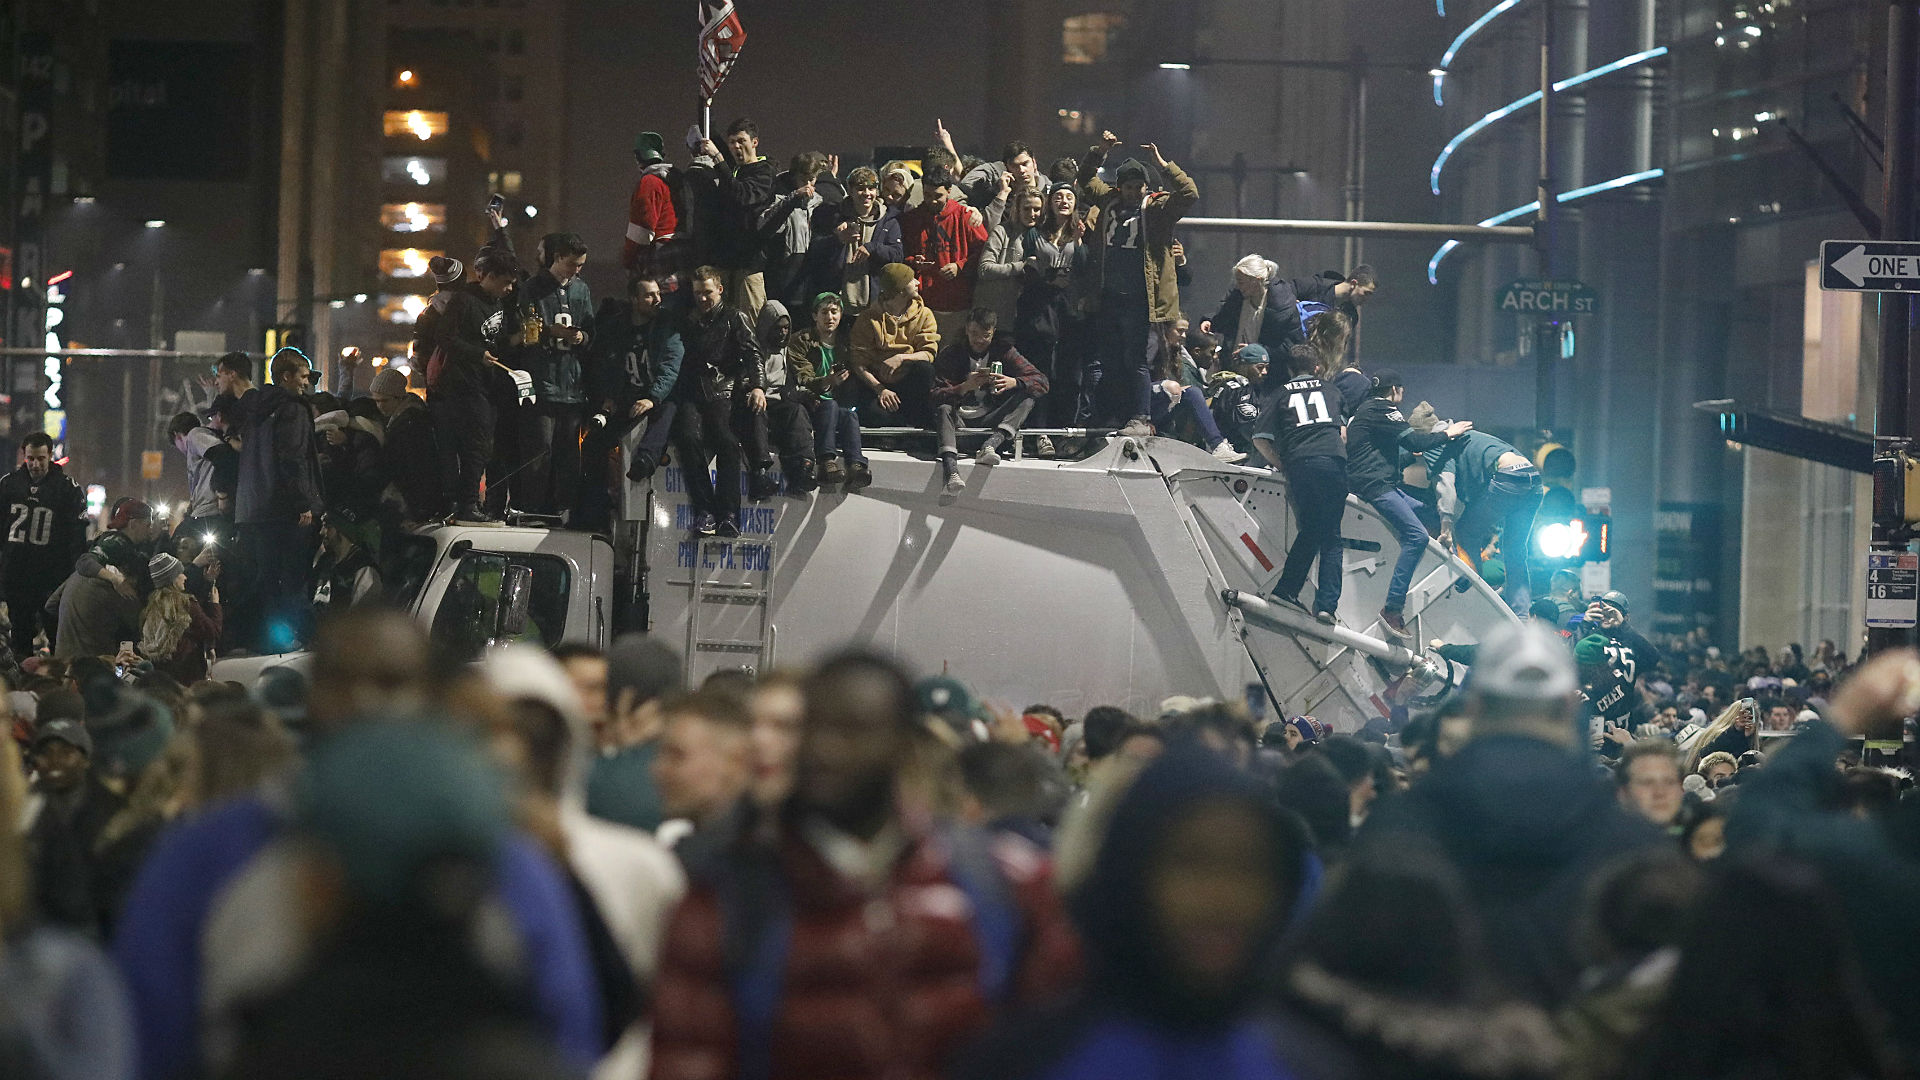 Eagles bring Lombardi trophy to fans after landing in Philly